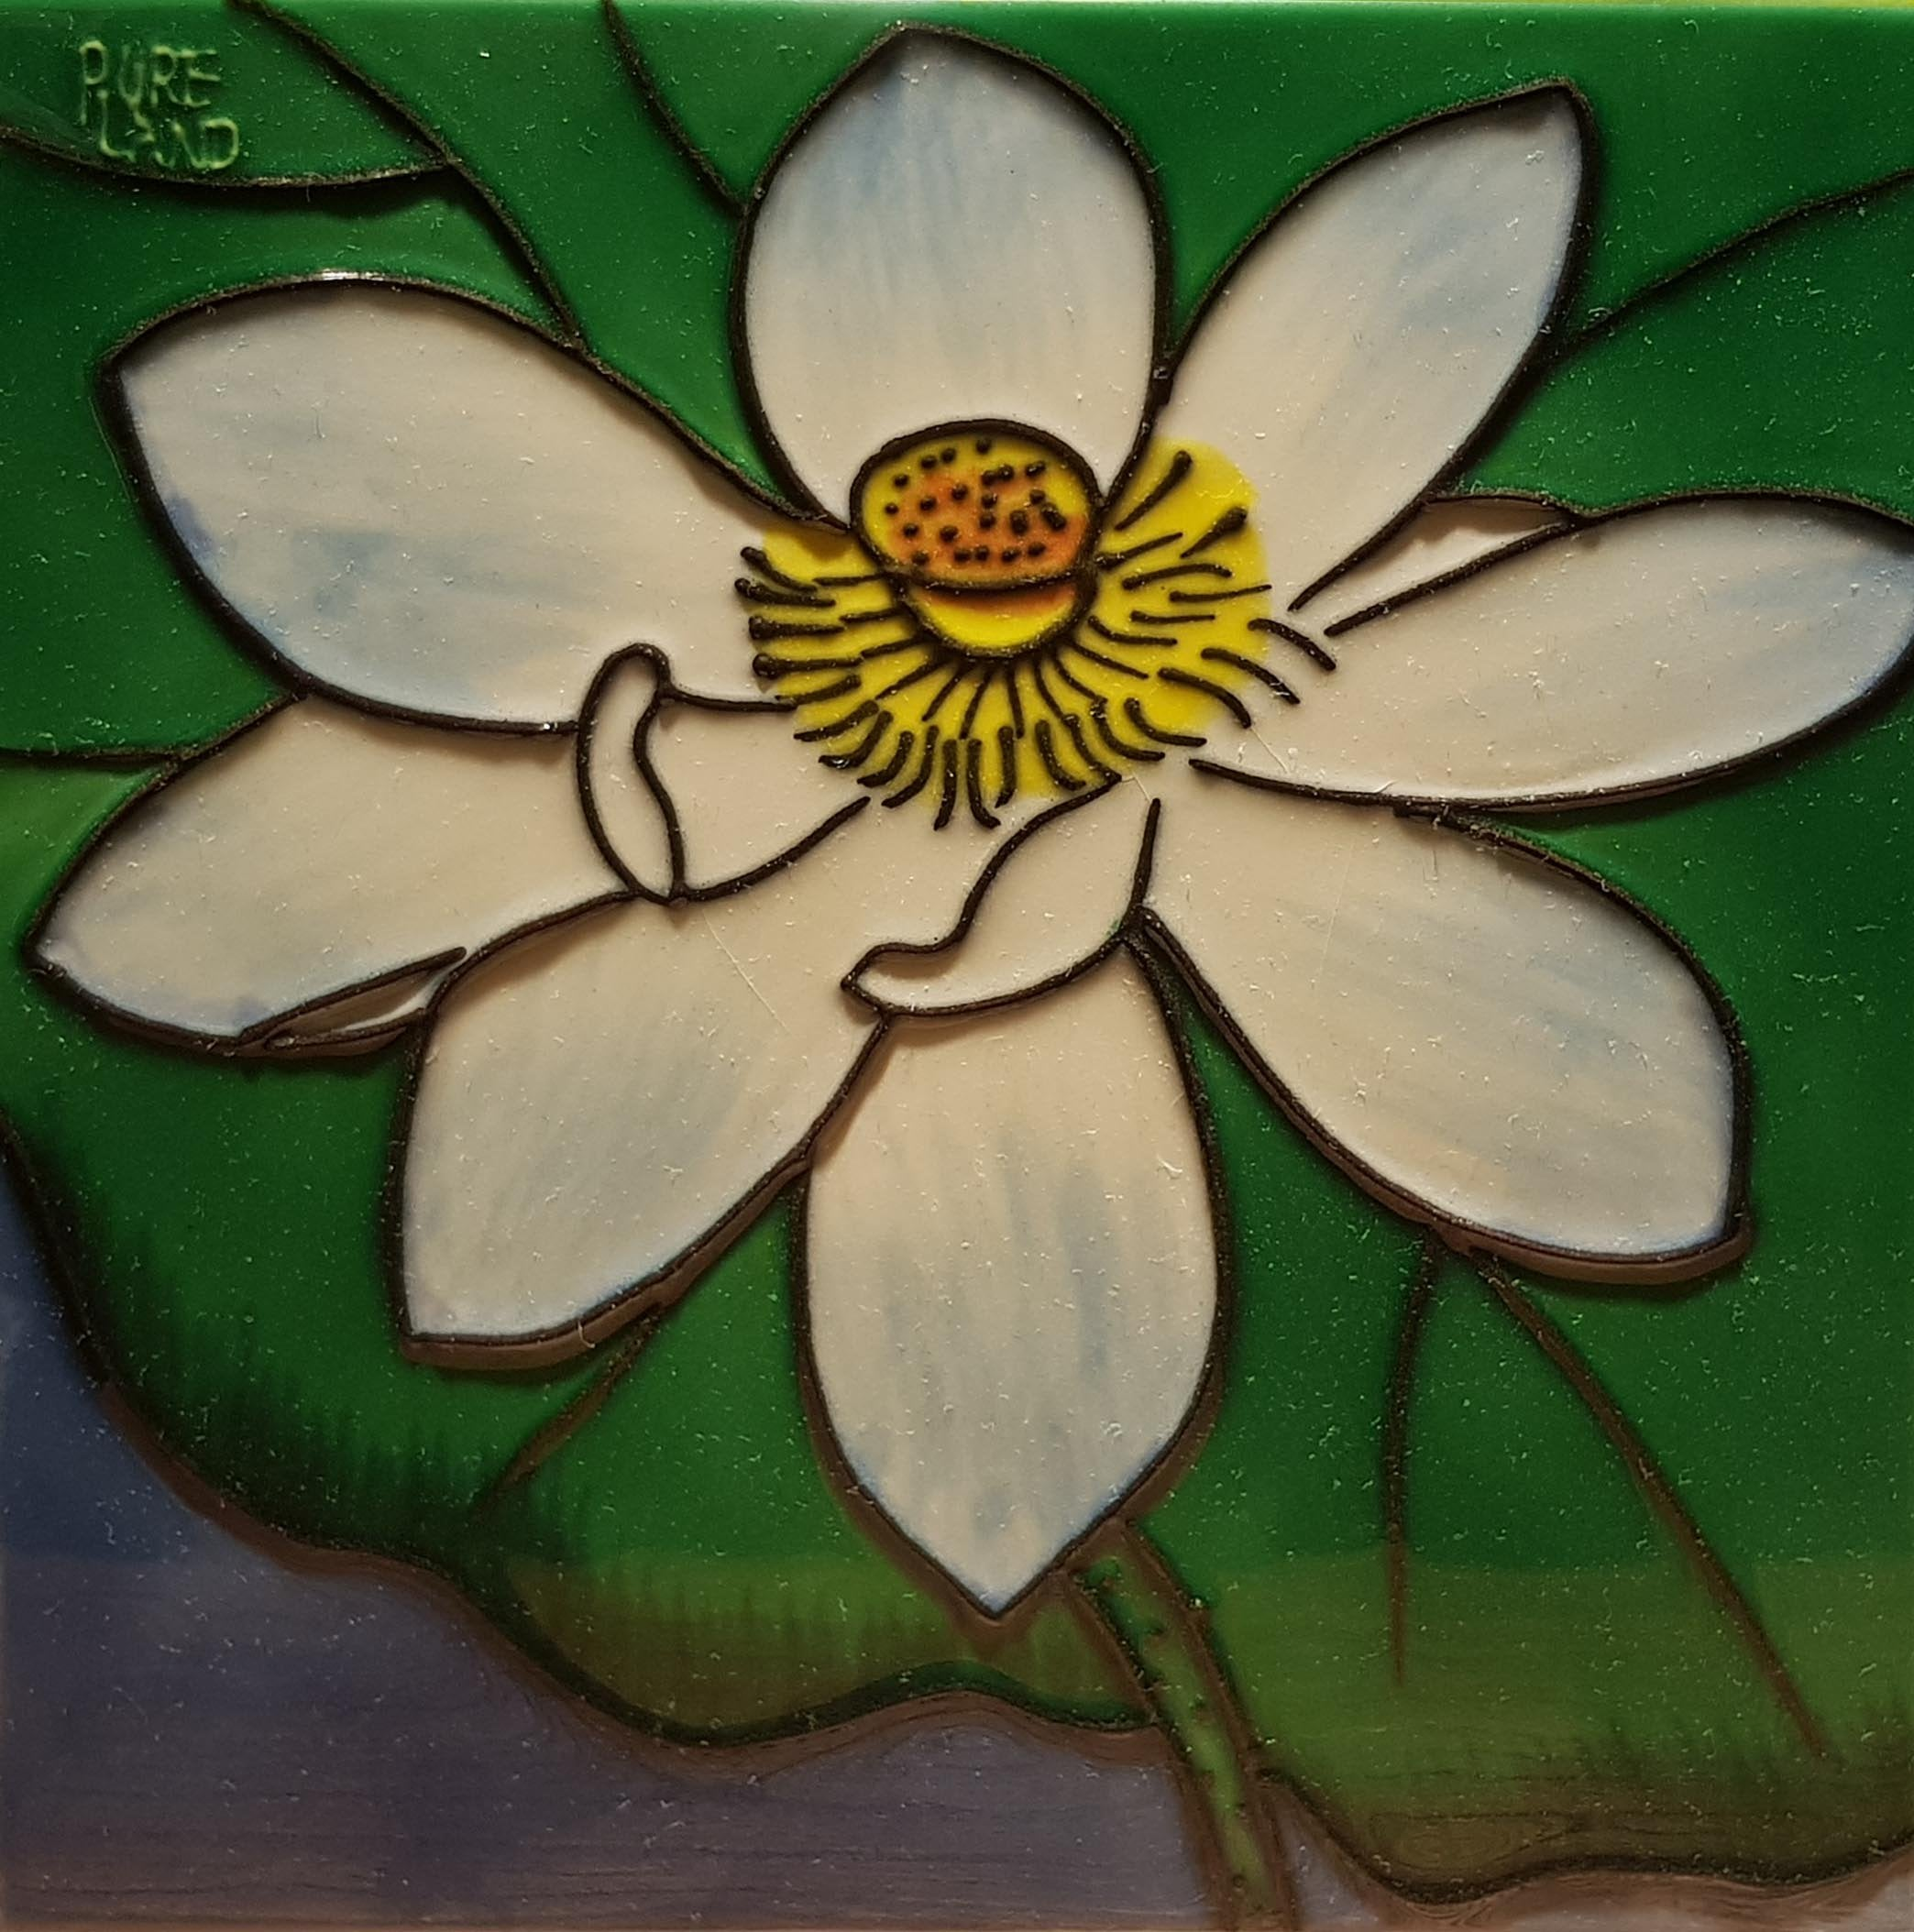 2291 Jade White Lotus Flower 20cm x 20cm Ceramic Tile